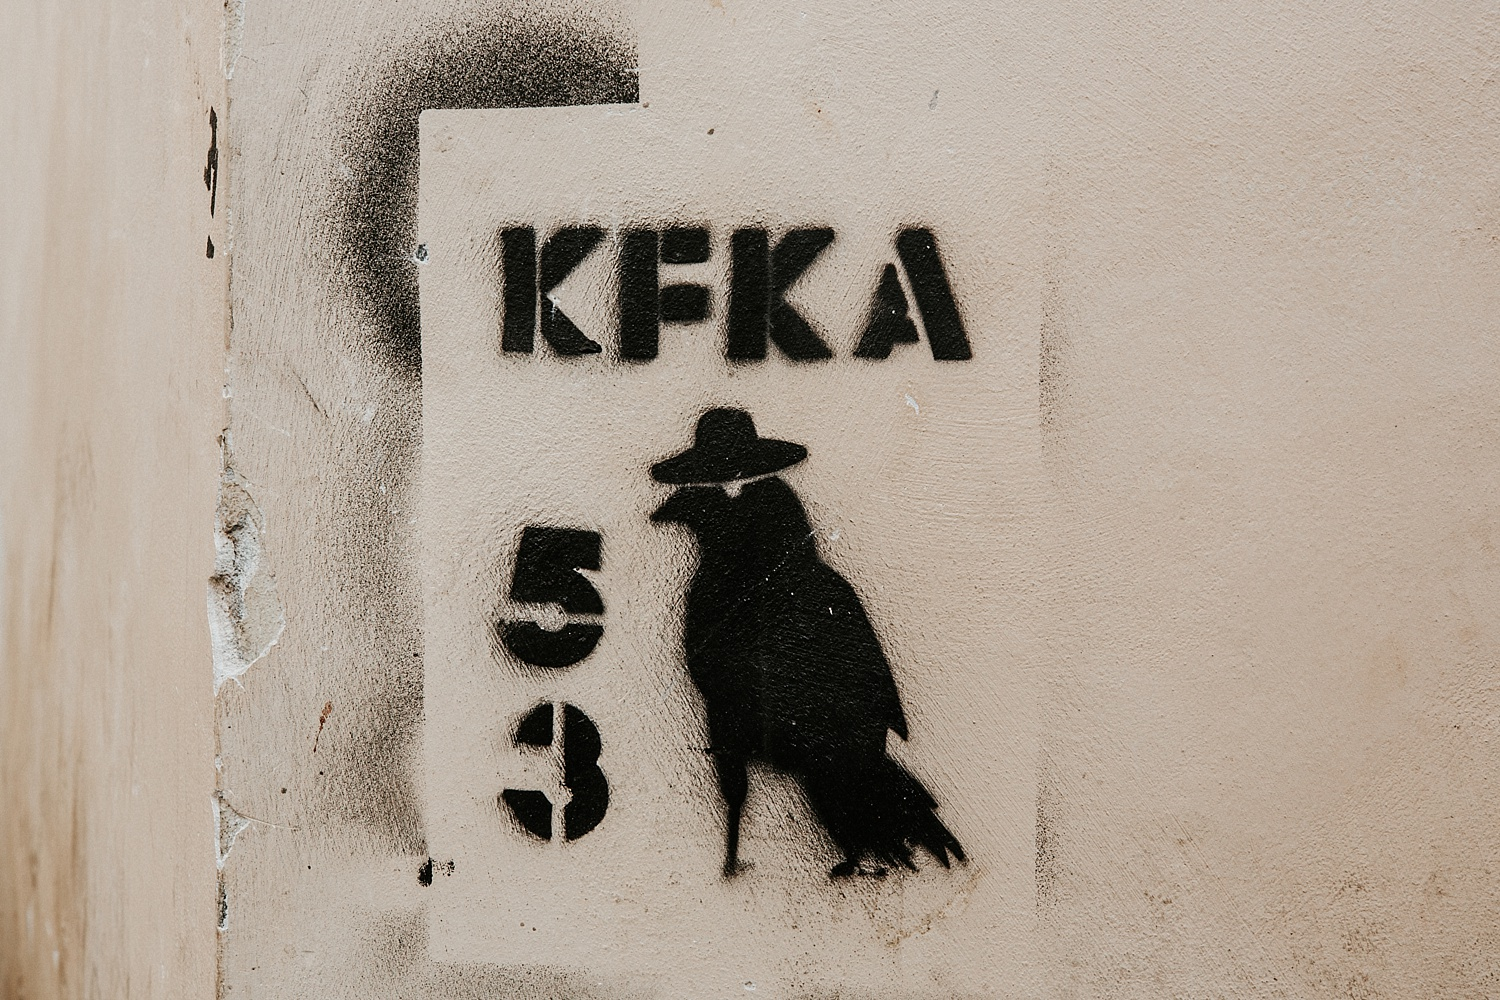 KFKA #53 crow street art (Franz Kafka), Prague, Czech Republic